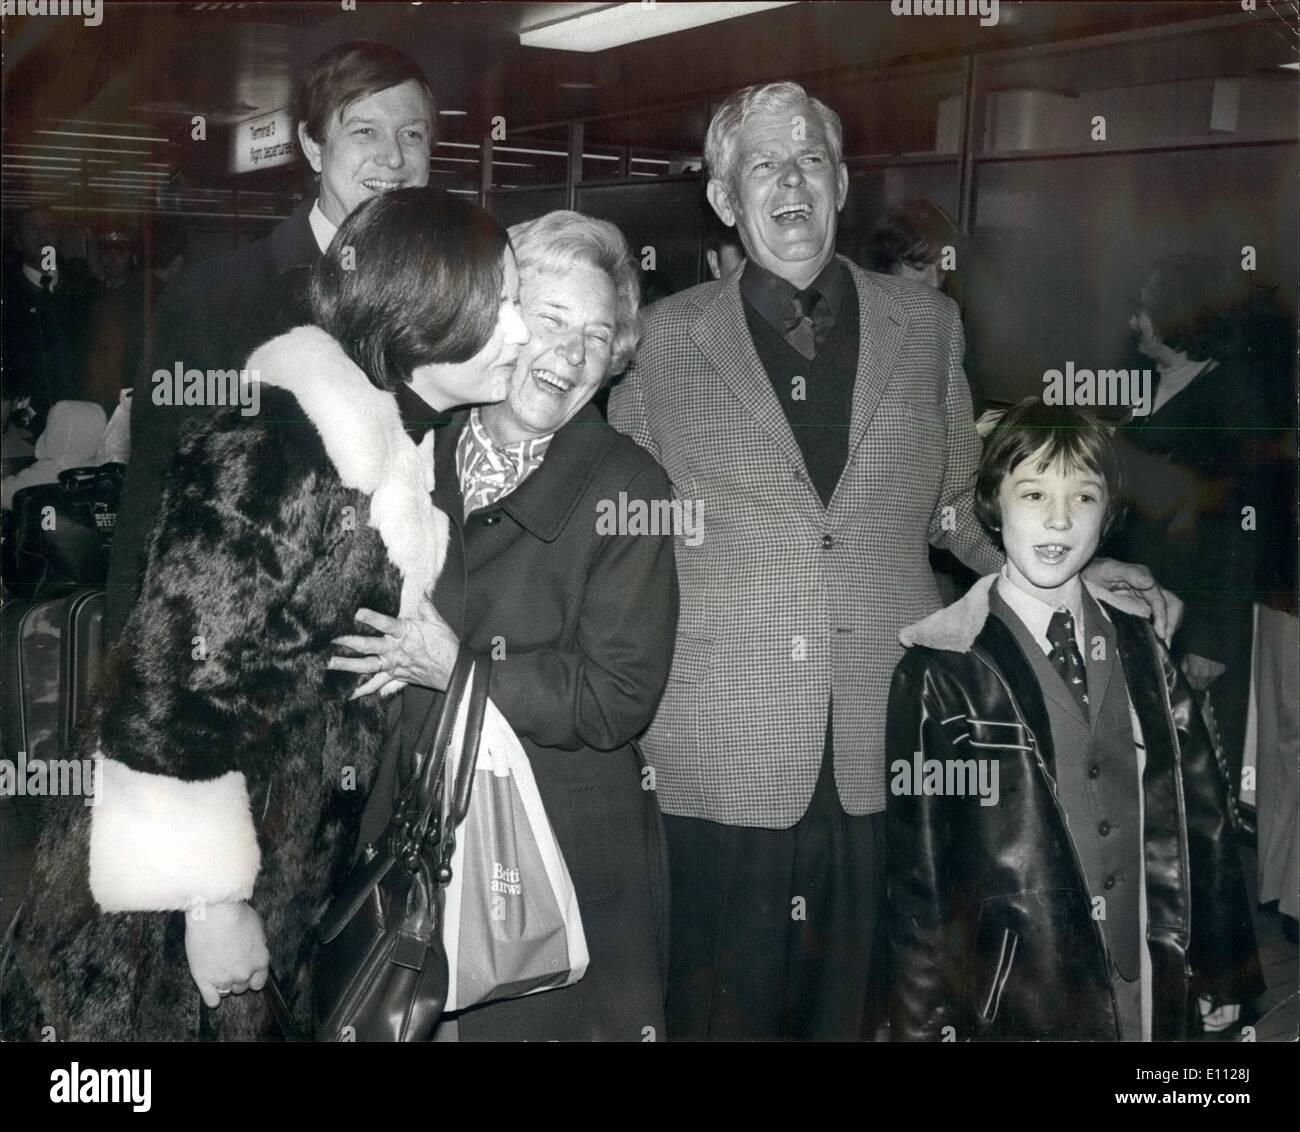 Feb. 02, 1975 - Garfield Todd and Wife Arrive from Rhodesia. The former Rhodesian Prime Minister Garfield Todd, who has been under restirction for the past four years, arrived at London Airport early this morning. He was accompanied by his wife, Grace, and they were met at the airport by Mr. Garfield's daughter, Judith, and her husband who is living in London. Photo Shows:- A happy Garfield Todd, on right, seen with his grandson, son of Judith Todds husband Mr. Acton, Judith Todd seen kissingher mother Grace, standing behind them is Mr. Acton, Judith Todds husband. Mr - Stock Image